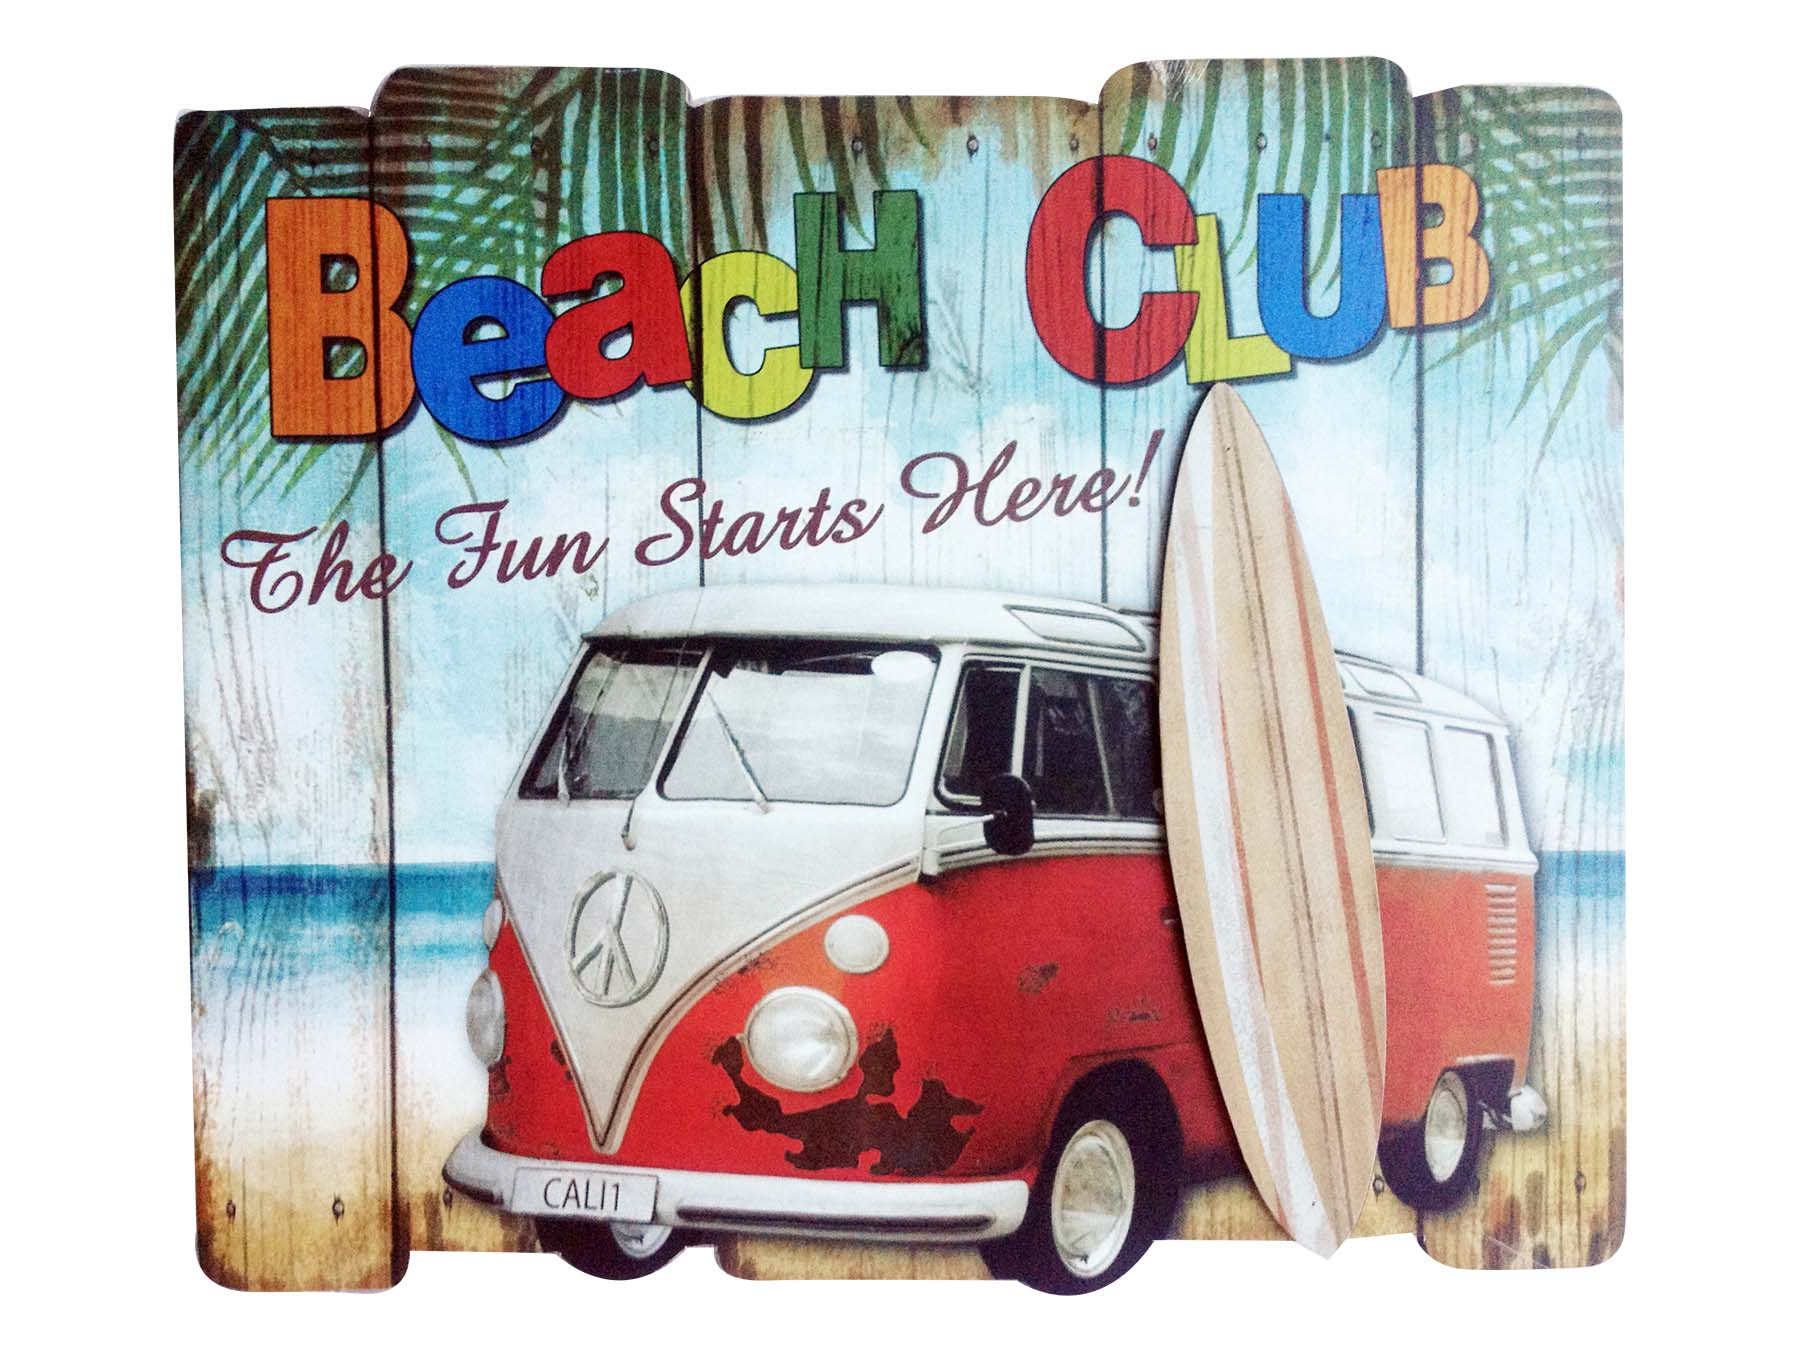 PLAC-WOOD/ BEACH CLUB WB * UOM: pc * Minimum Order:6